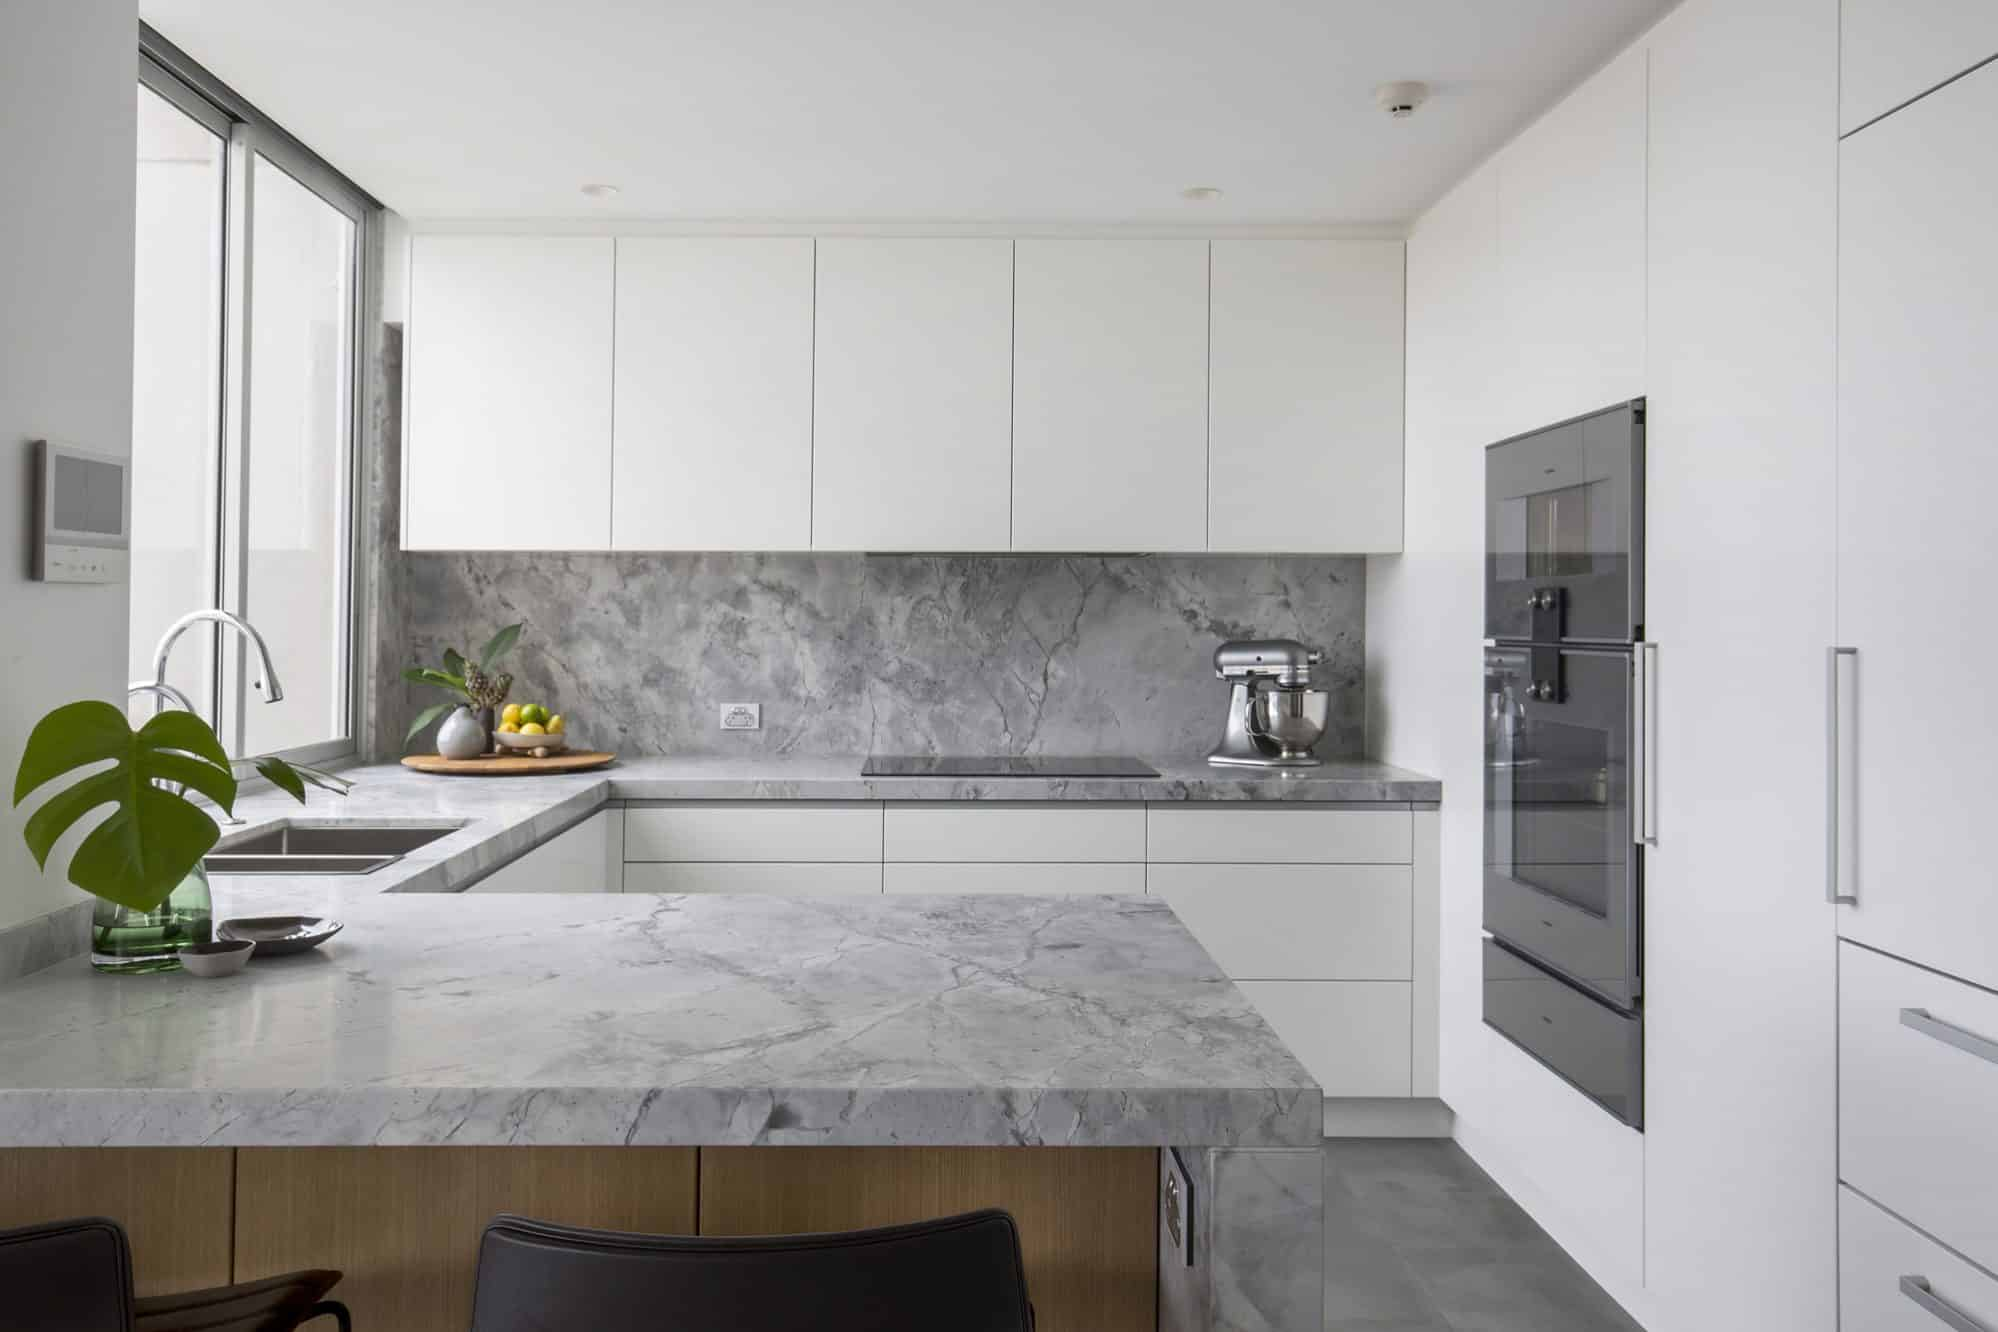 Dolamite granite slabs are used throughout this apartment kitchen